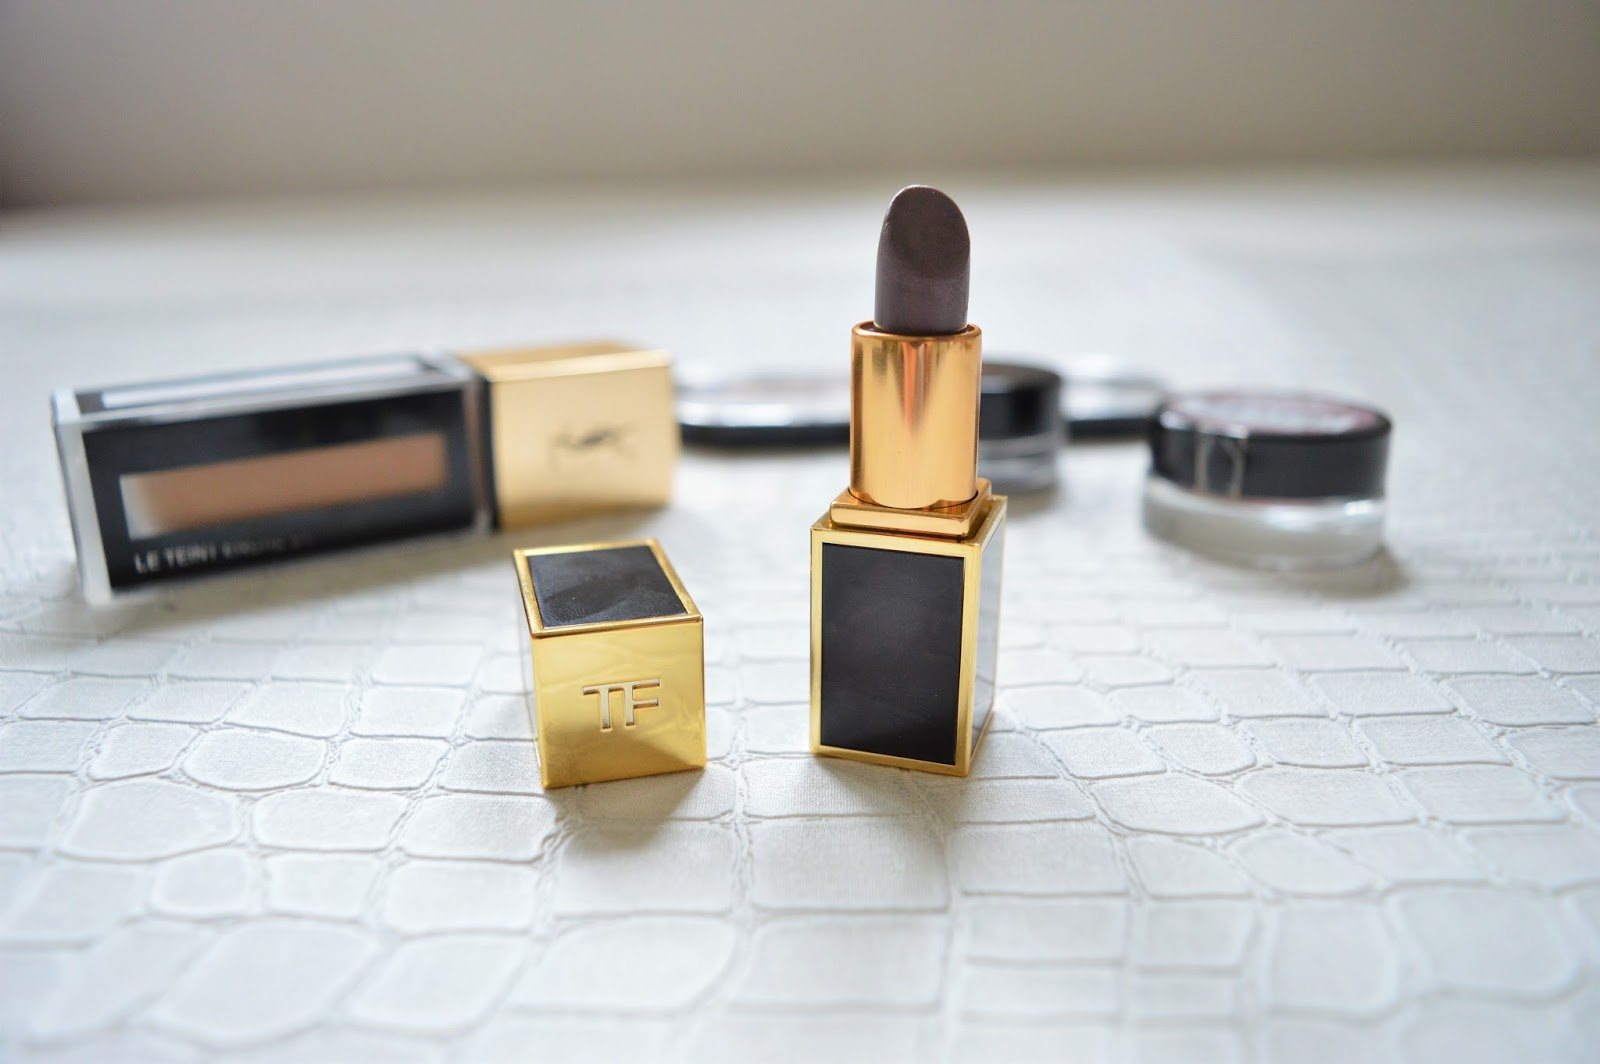 Beauty: Lilac Lipstick & The Golden Age of Makeup | Tom Ford Lipstick Review